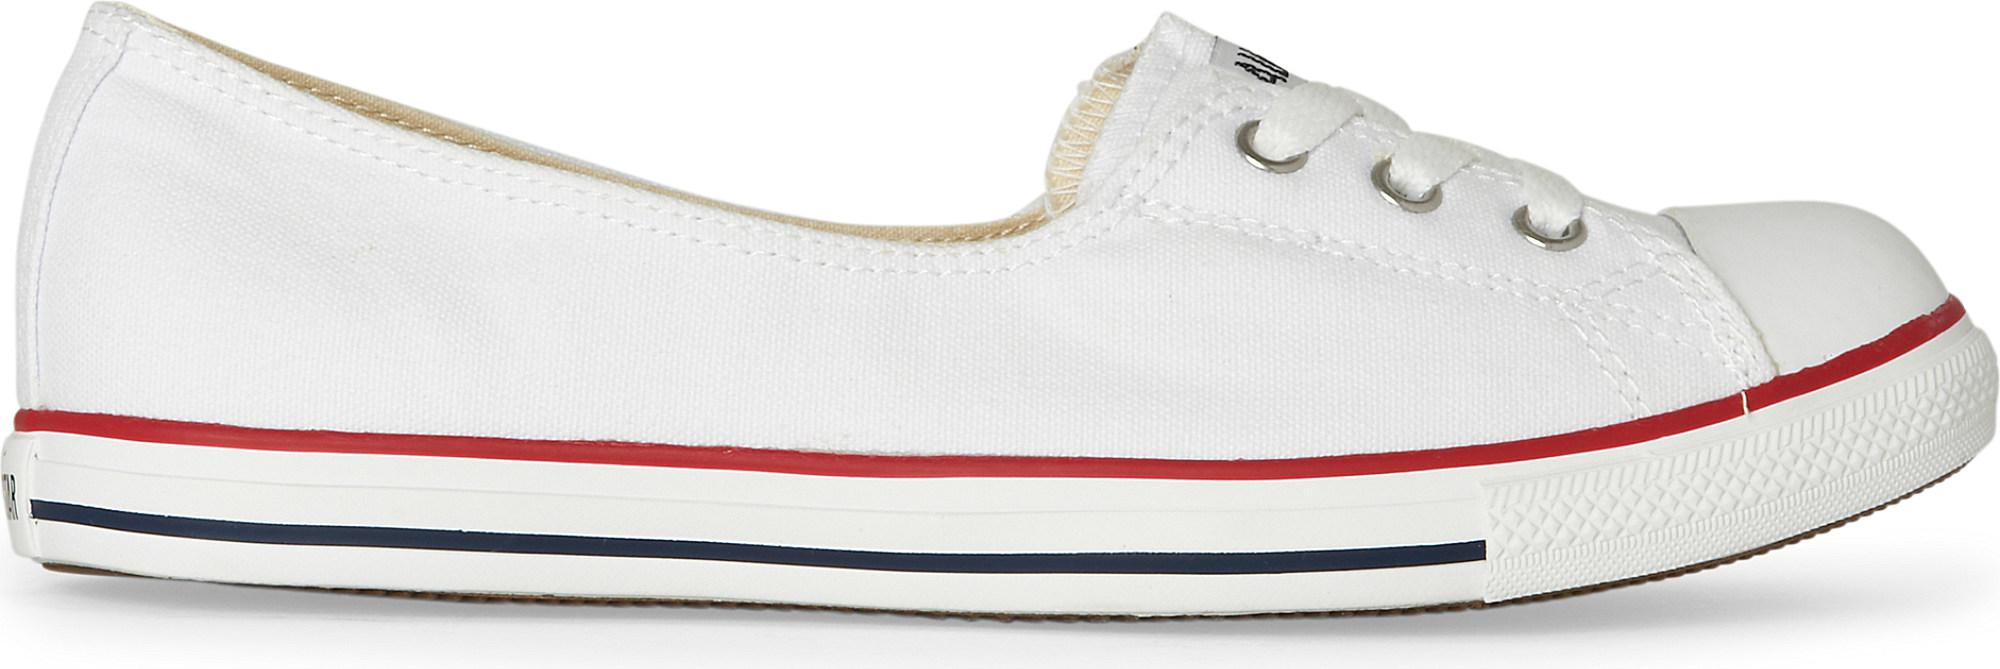 56dee58e7eef Converse All Star Dance Lace Trainers in White - Lyst